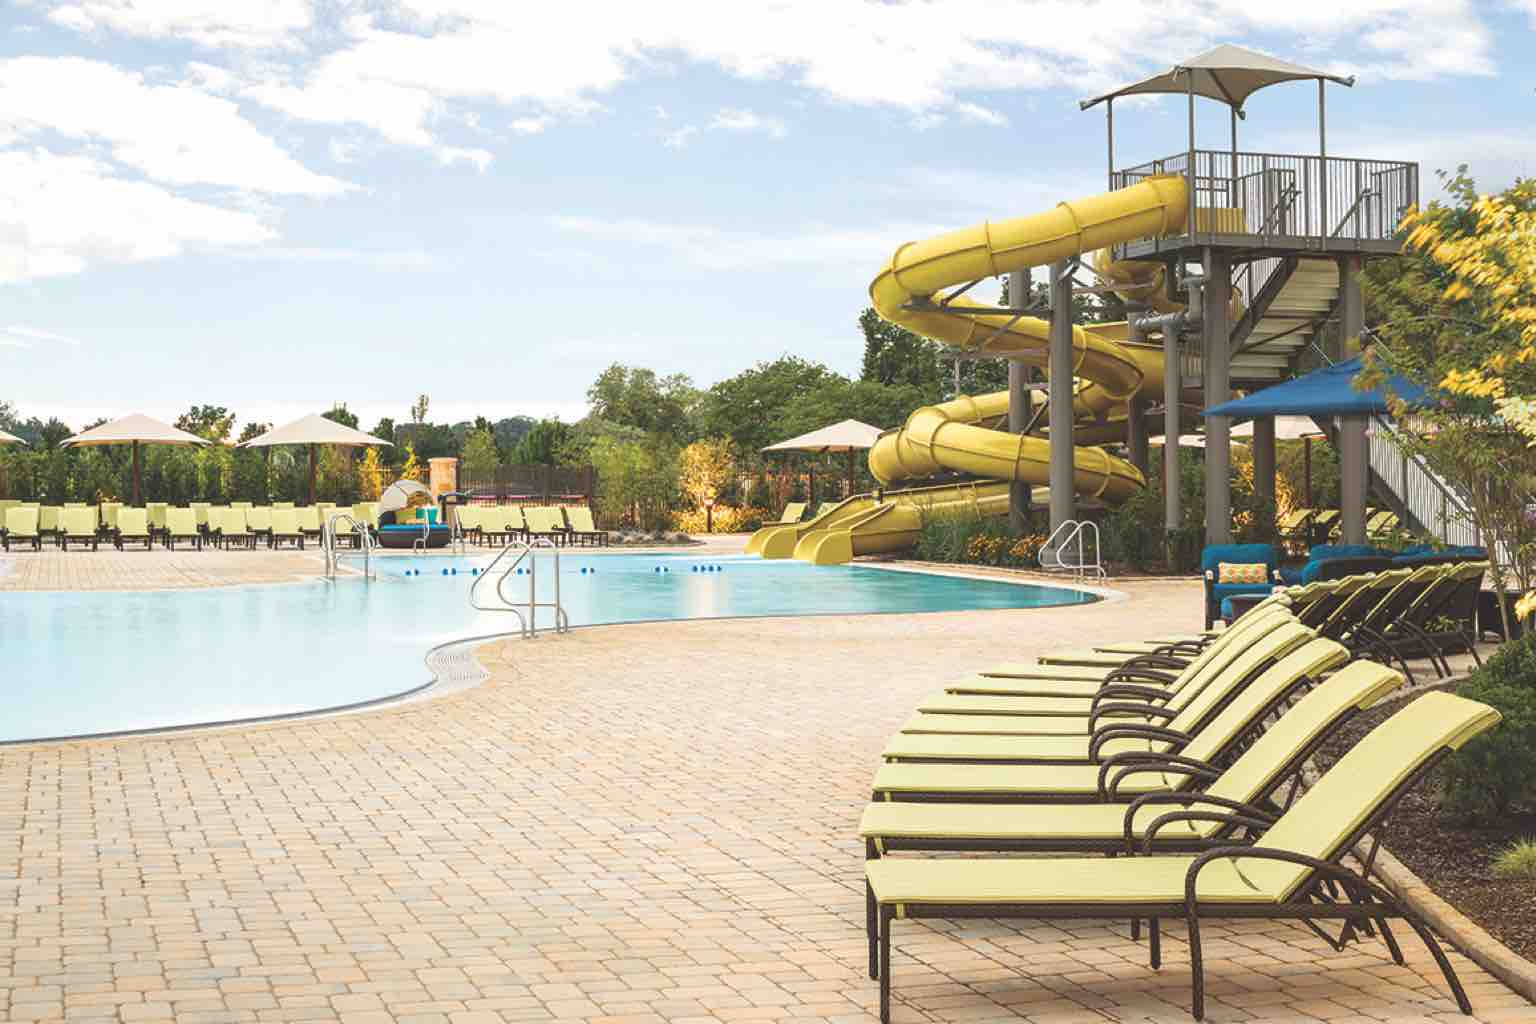 An outdoor pool deck with a chaise-lined pool, umbrellas and two-story waterslide